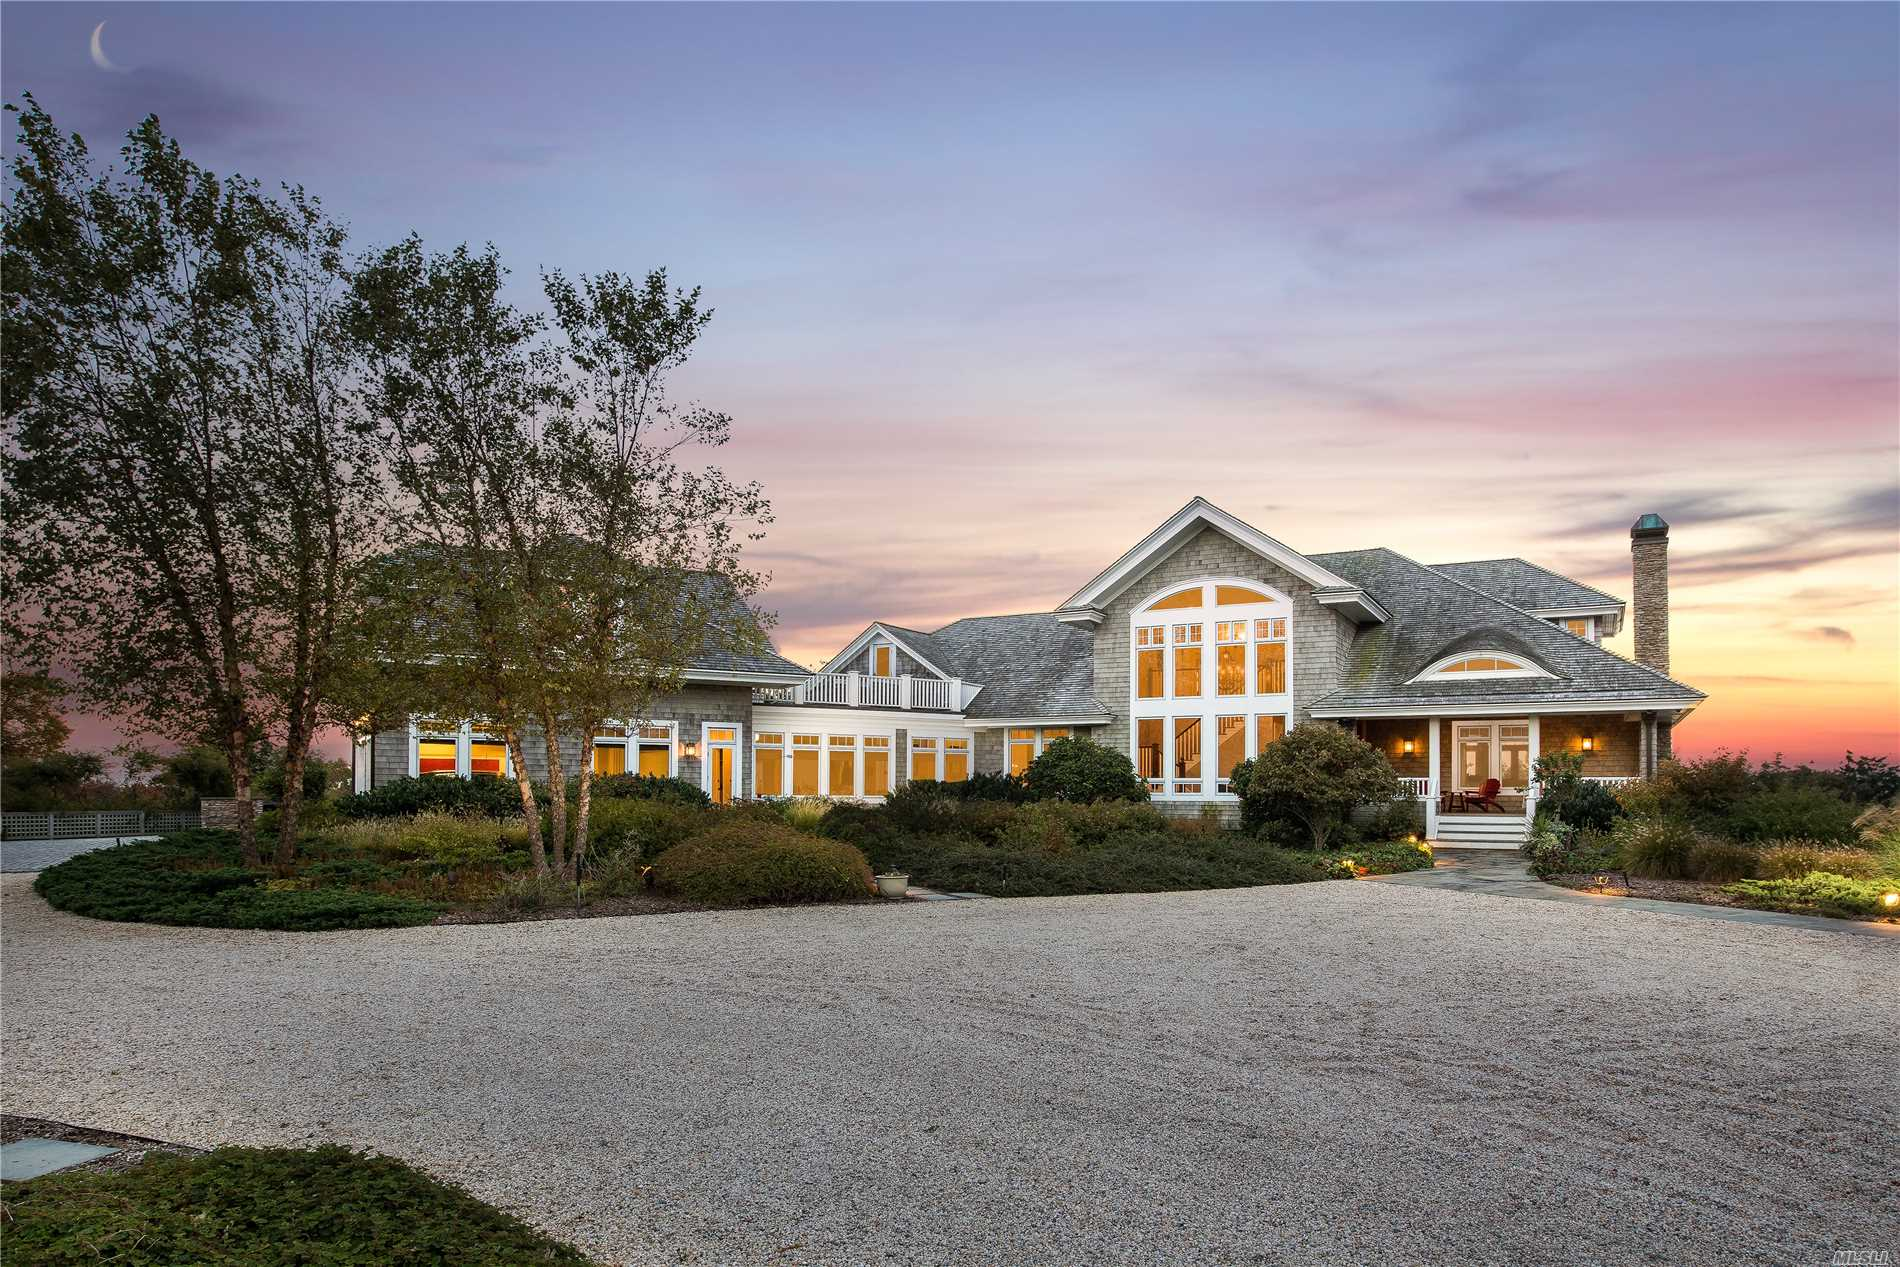 Beautiful Waterfront Estate On 11 Gated Acres And Surrounded By More Preserved Land. 70 Miles From Nyc And 1.5 From Bellport Village. This Over 7000 Square Foot, 4 Bedroom Custom Built Home Is Exquisite. No Detail Has Been Over Looked. Relax By The Pool And Watch The Sunset Over The Great South Bay Or Kayak To Fire Island. Whatever You Decide, You Know As Soon As You Enter Turtle Bay You Will Unwind And Relax.